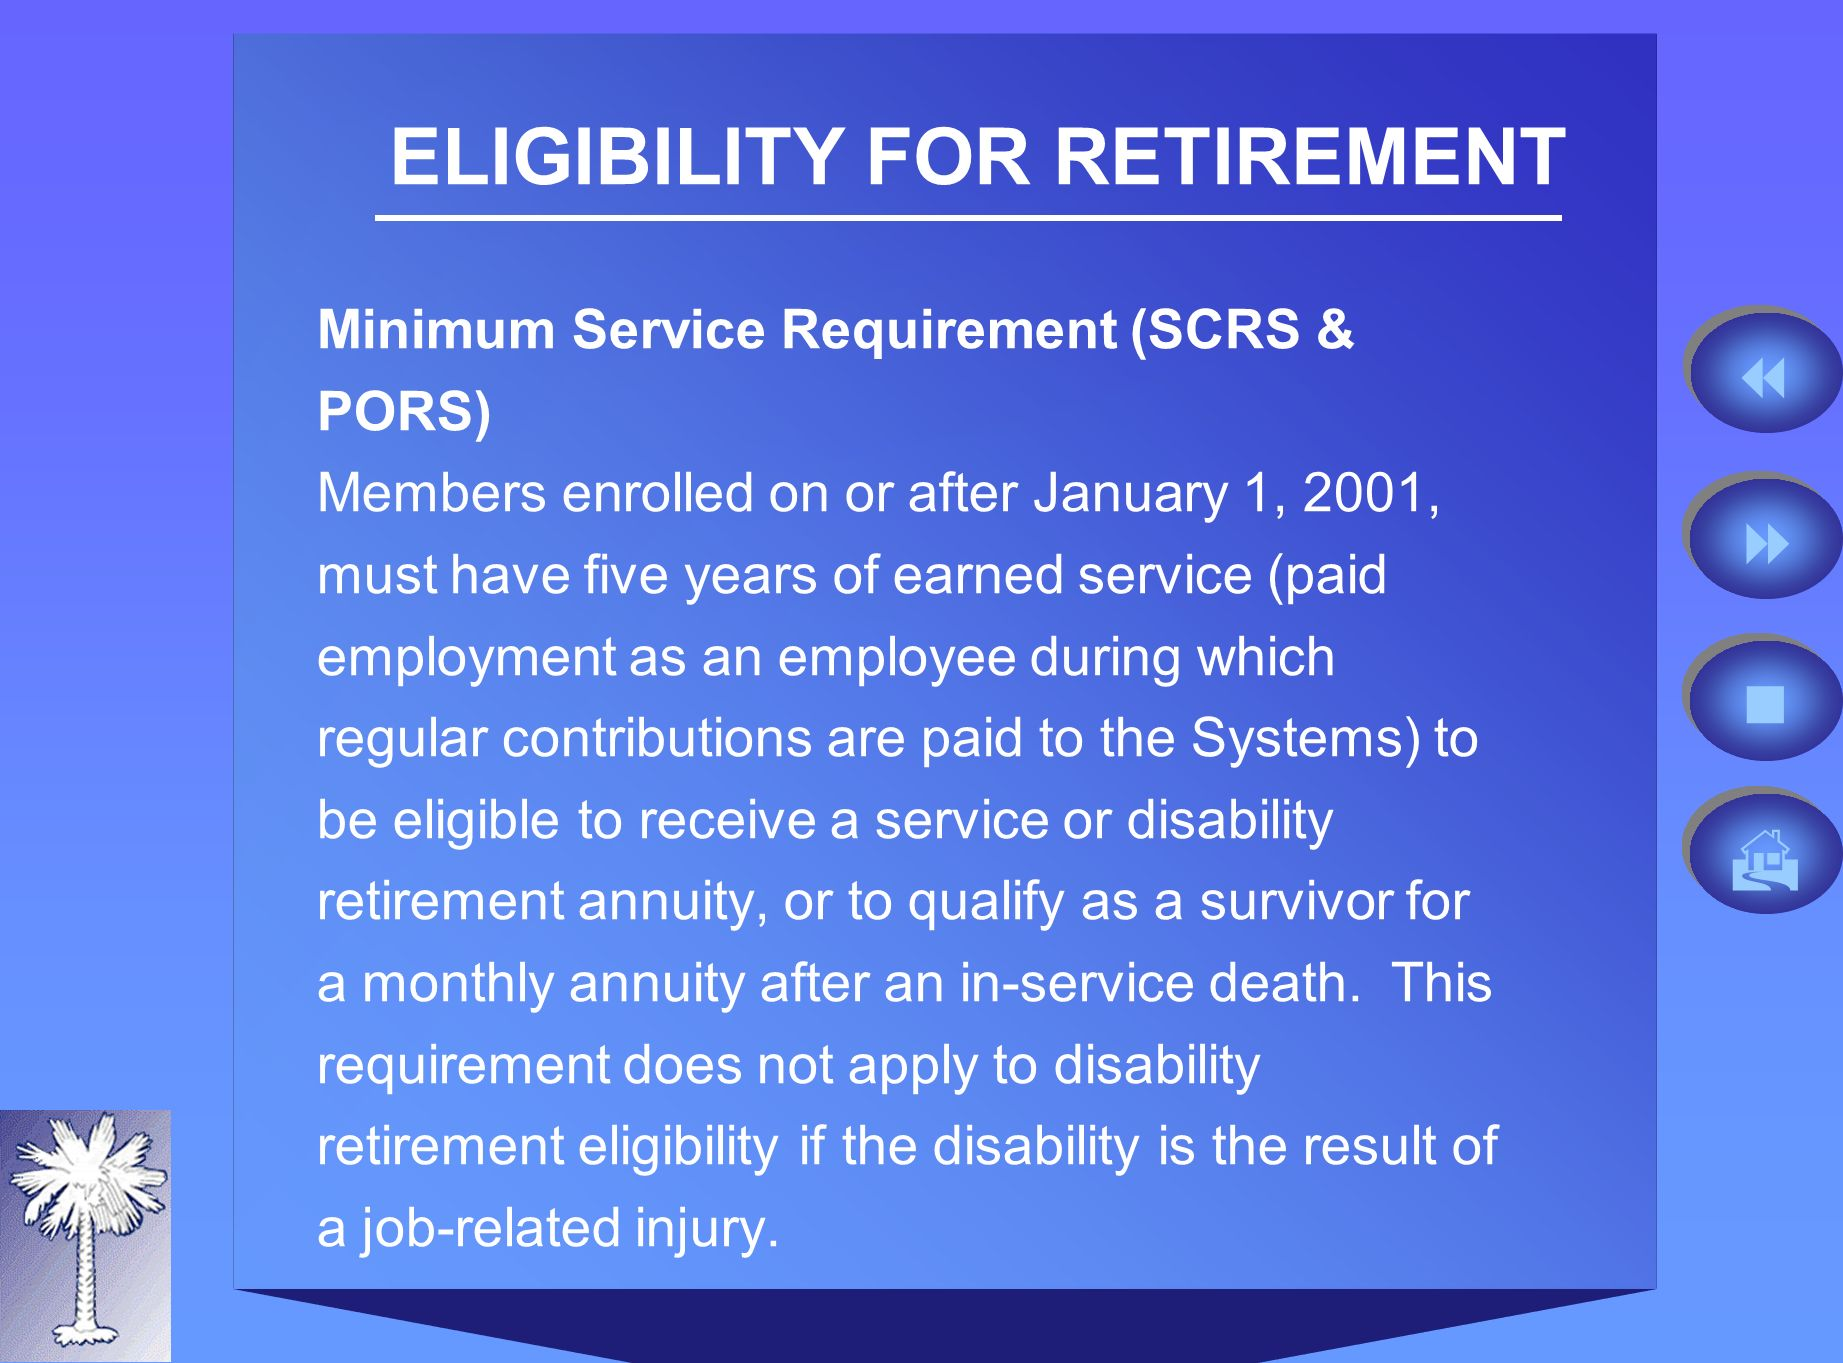 ELIGIBILITY FOR RETIREMENT Minimum Service Requirement (SCRS & PORS) Members enrolled on or after January 1, 2001, must have five years of earned service (paid employment as an employee during which regular contributions are paid to the Systems) to be eligible to receive a service or disability retirement annuity, or to qualify as a survivor for a monthly annuity after an in-service death.